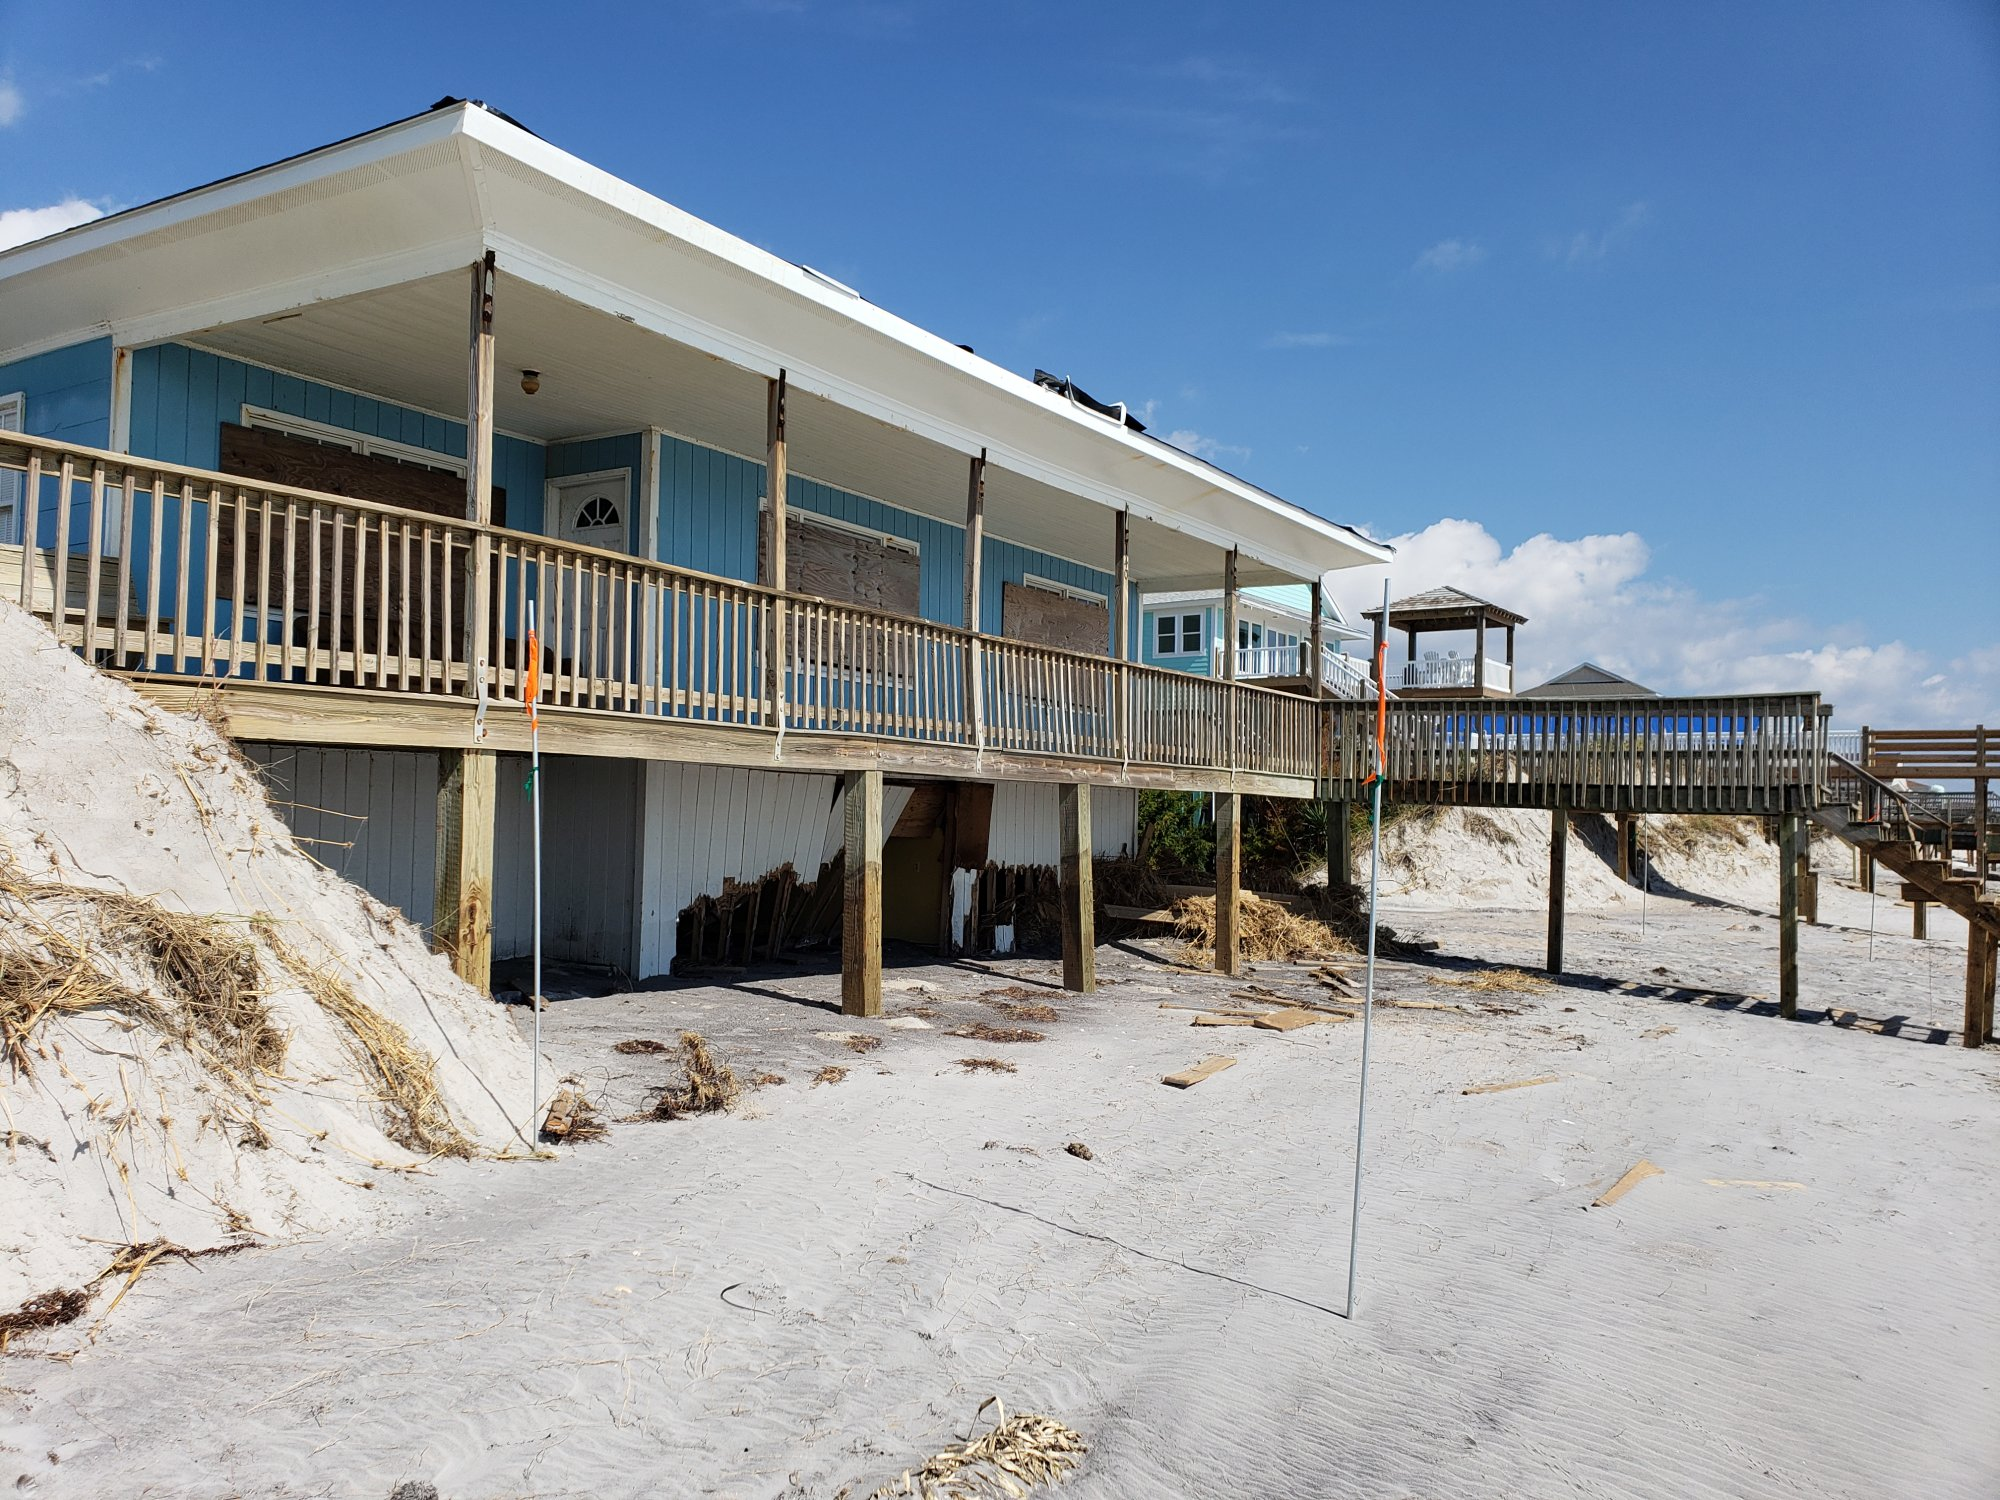 The storm surge destroyed the lower floor of this Surf City beach home. (Photo credit: Carl Morgan/NWS)